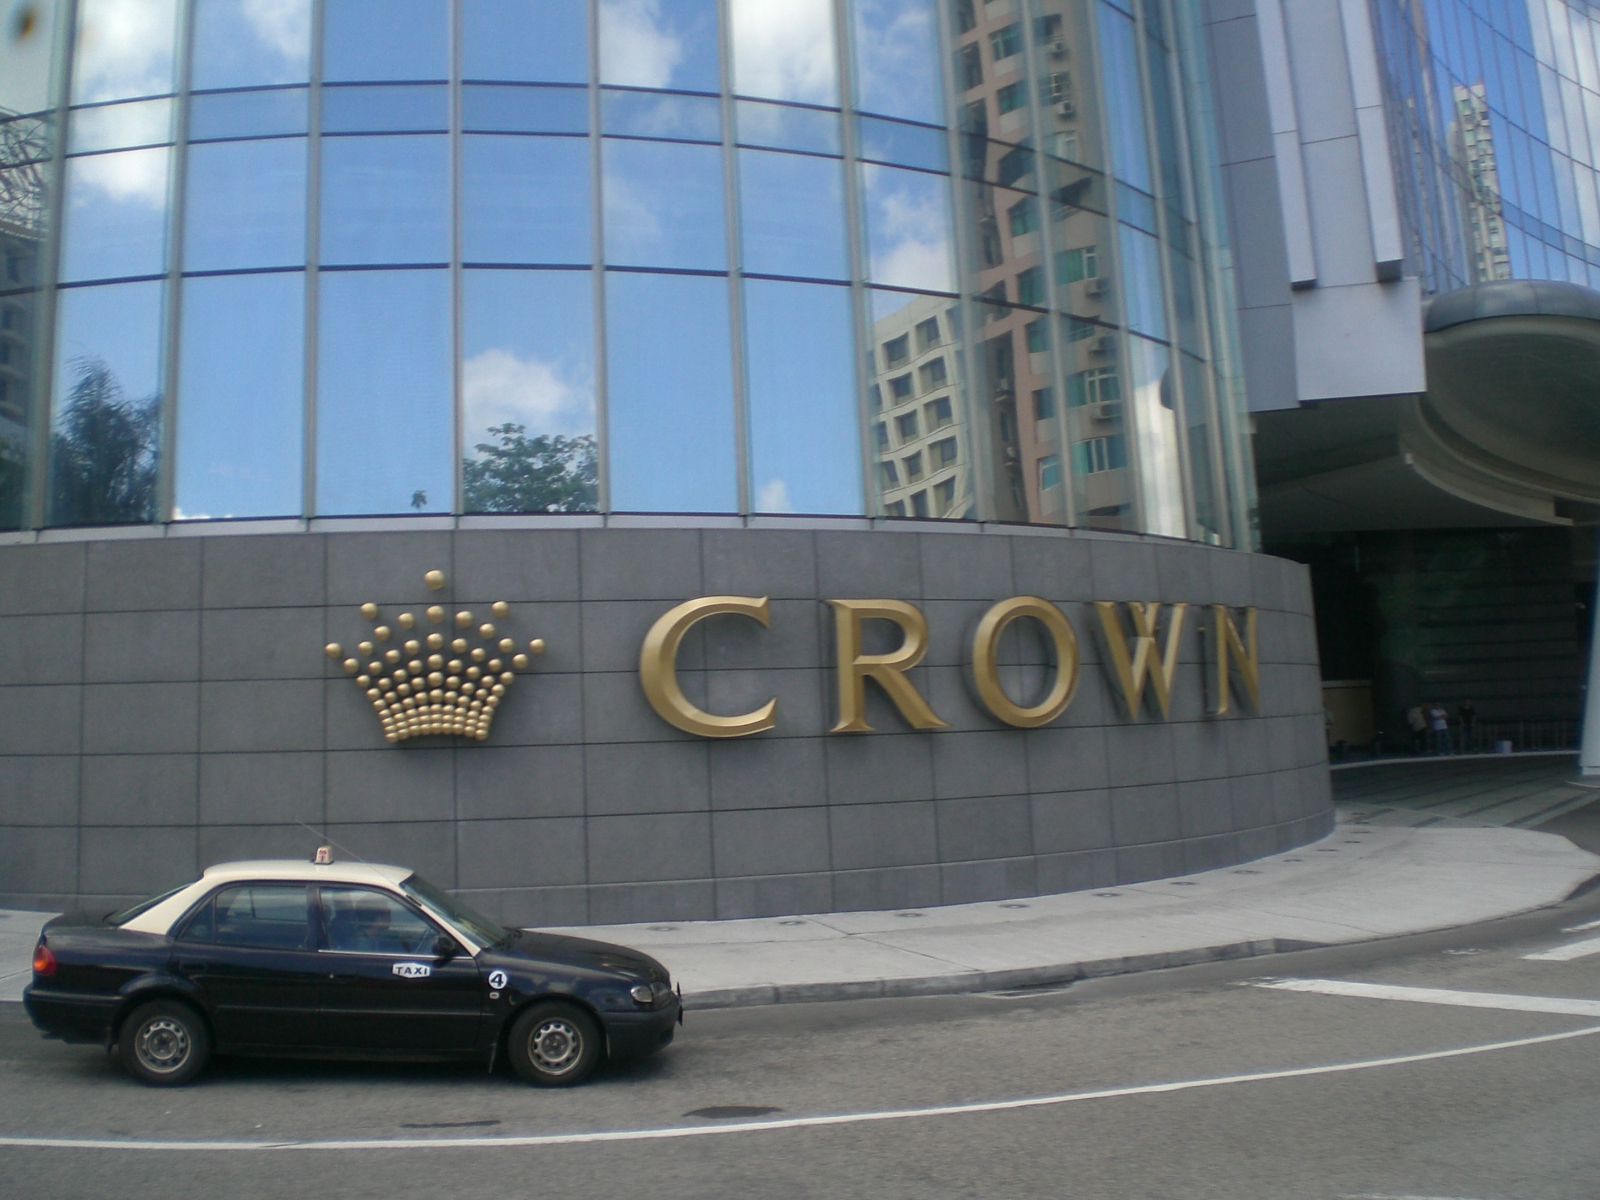 Macau crown casino excalibur 7 in 1 ultimate casino talking slot machine